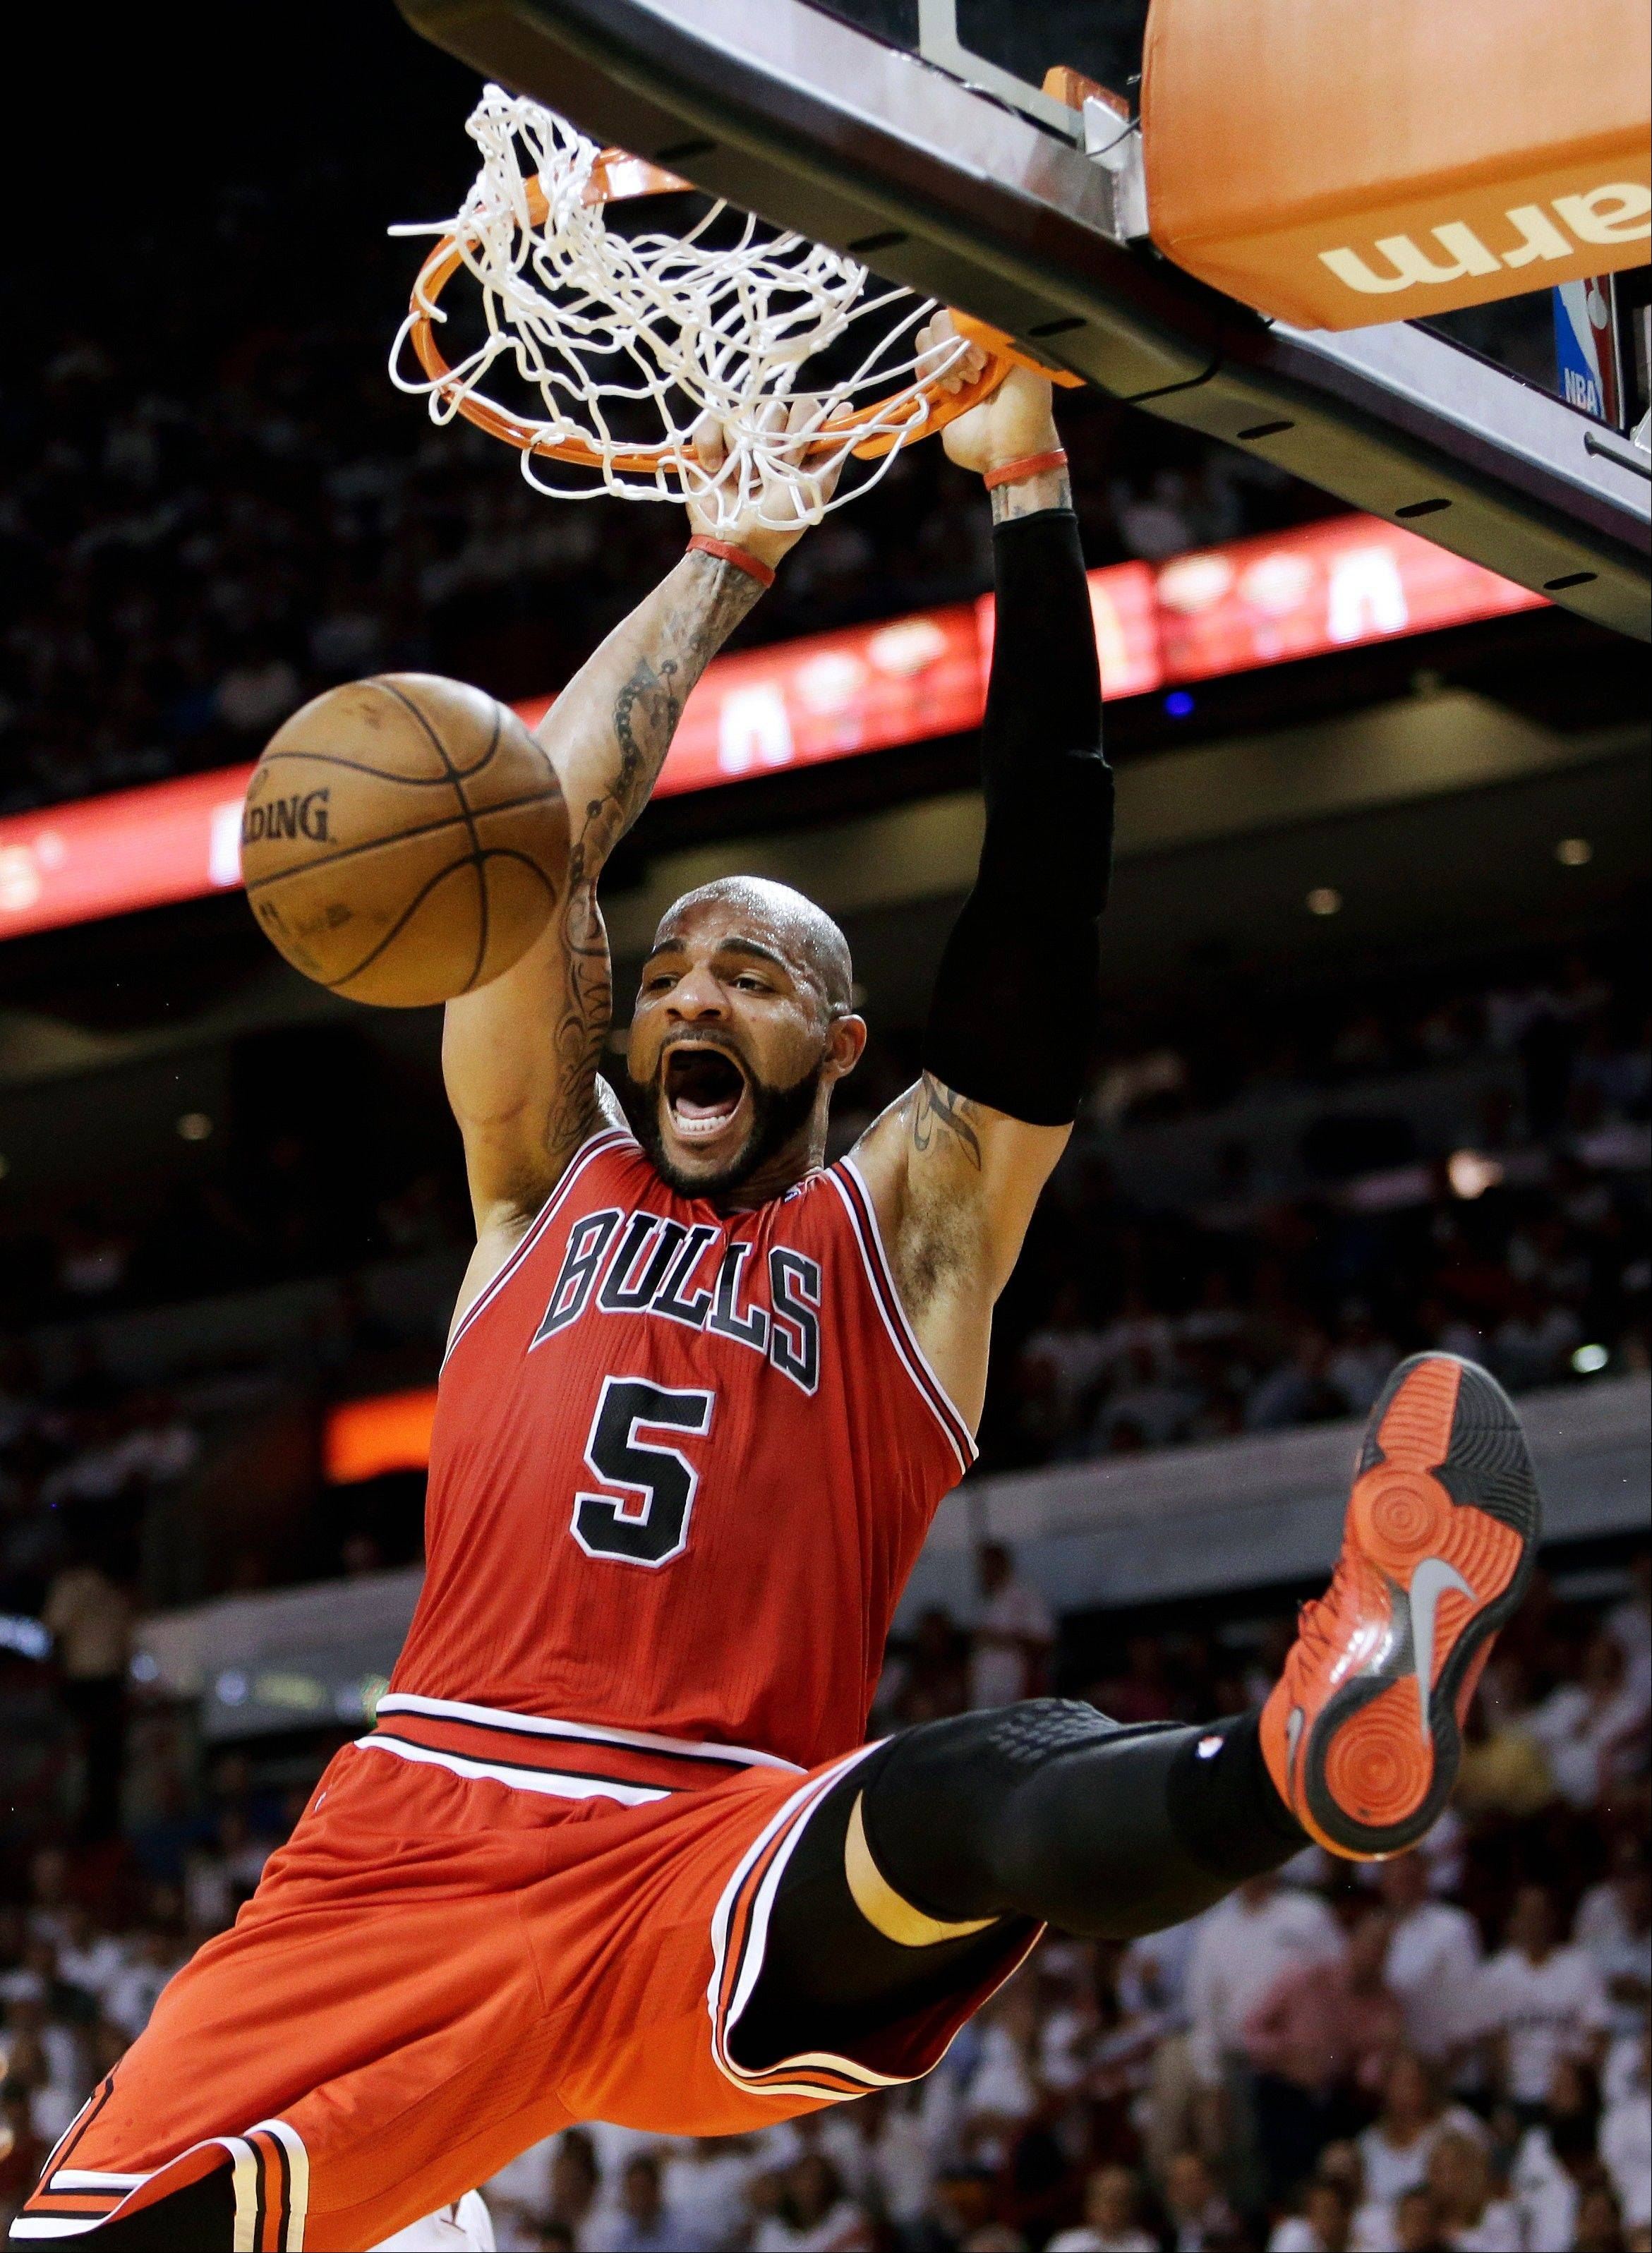 Bulls forward Carlos Boozer dunks during Monday's second half of Game 1 of the Bulls' second-round playoff series against Miami.